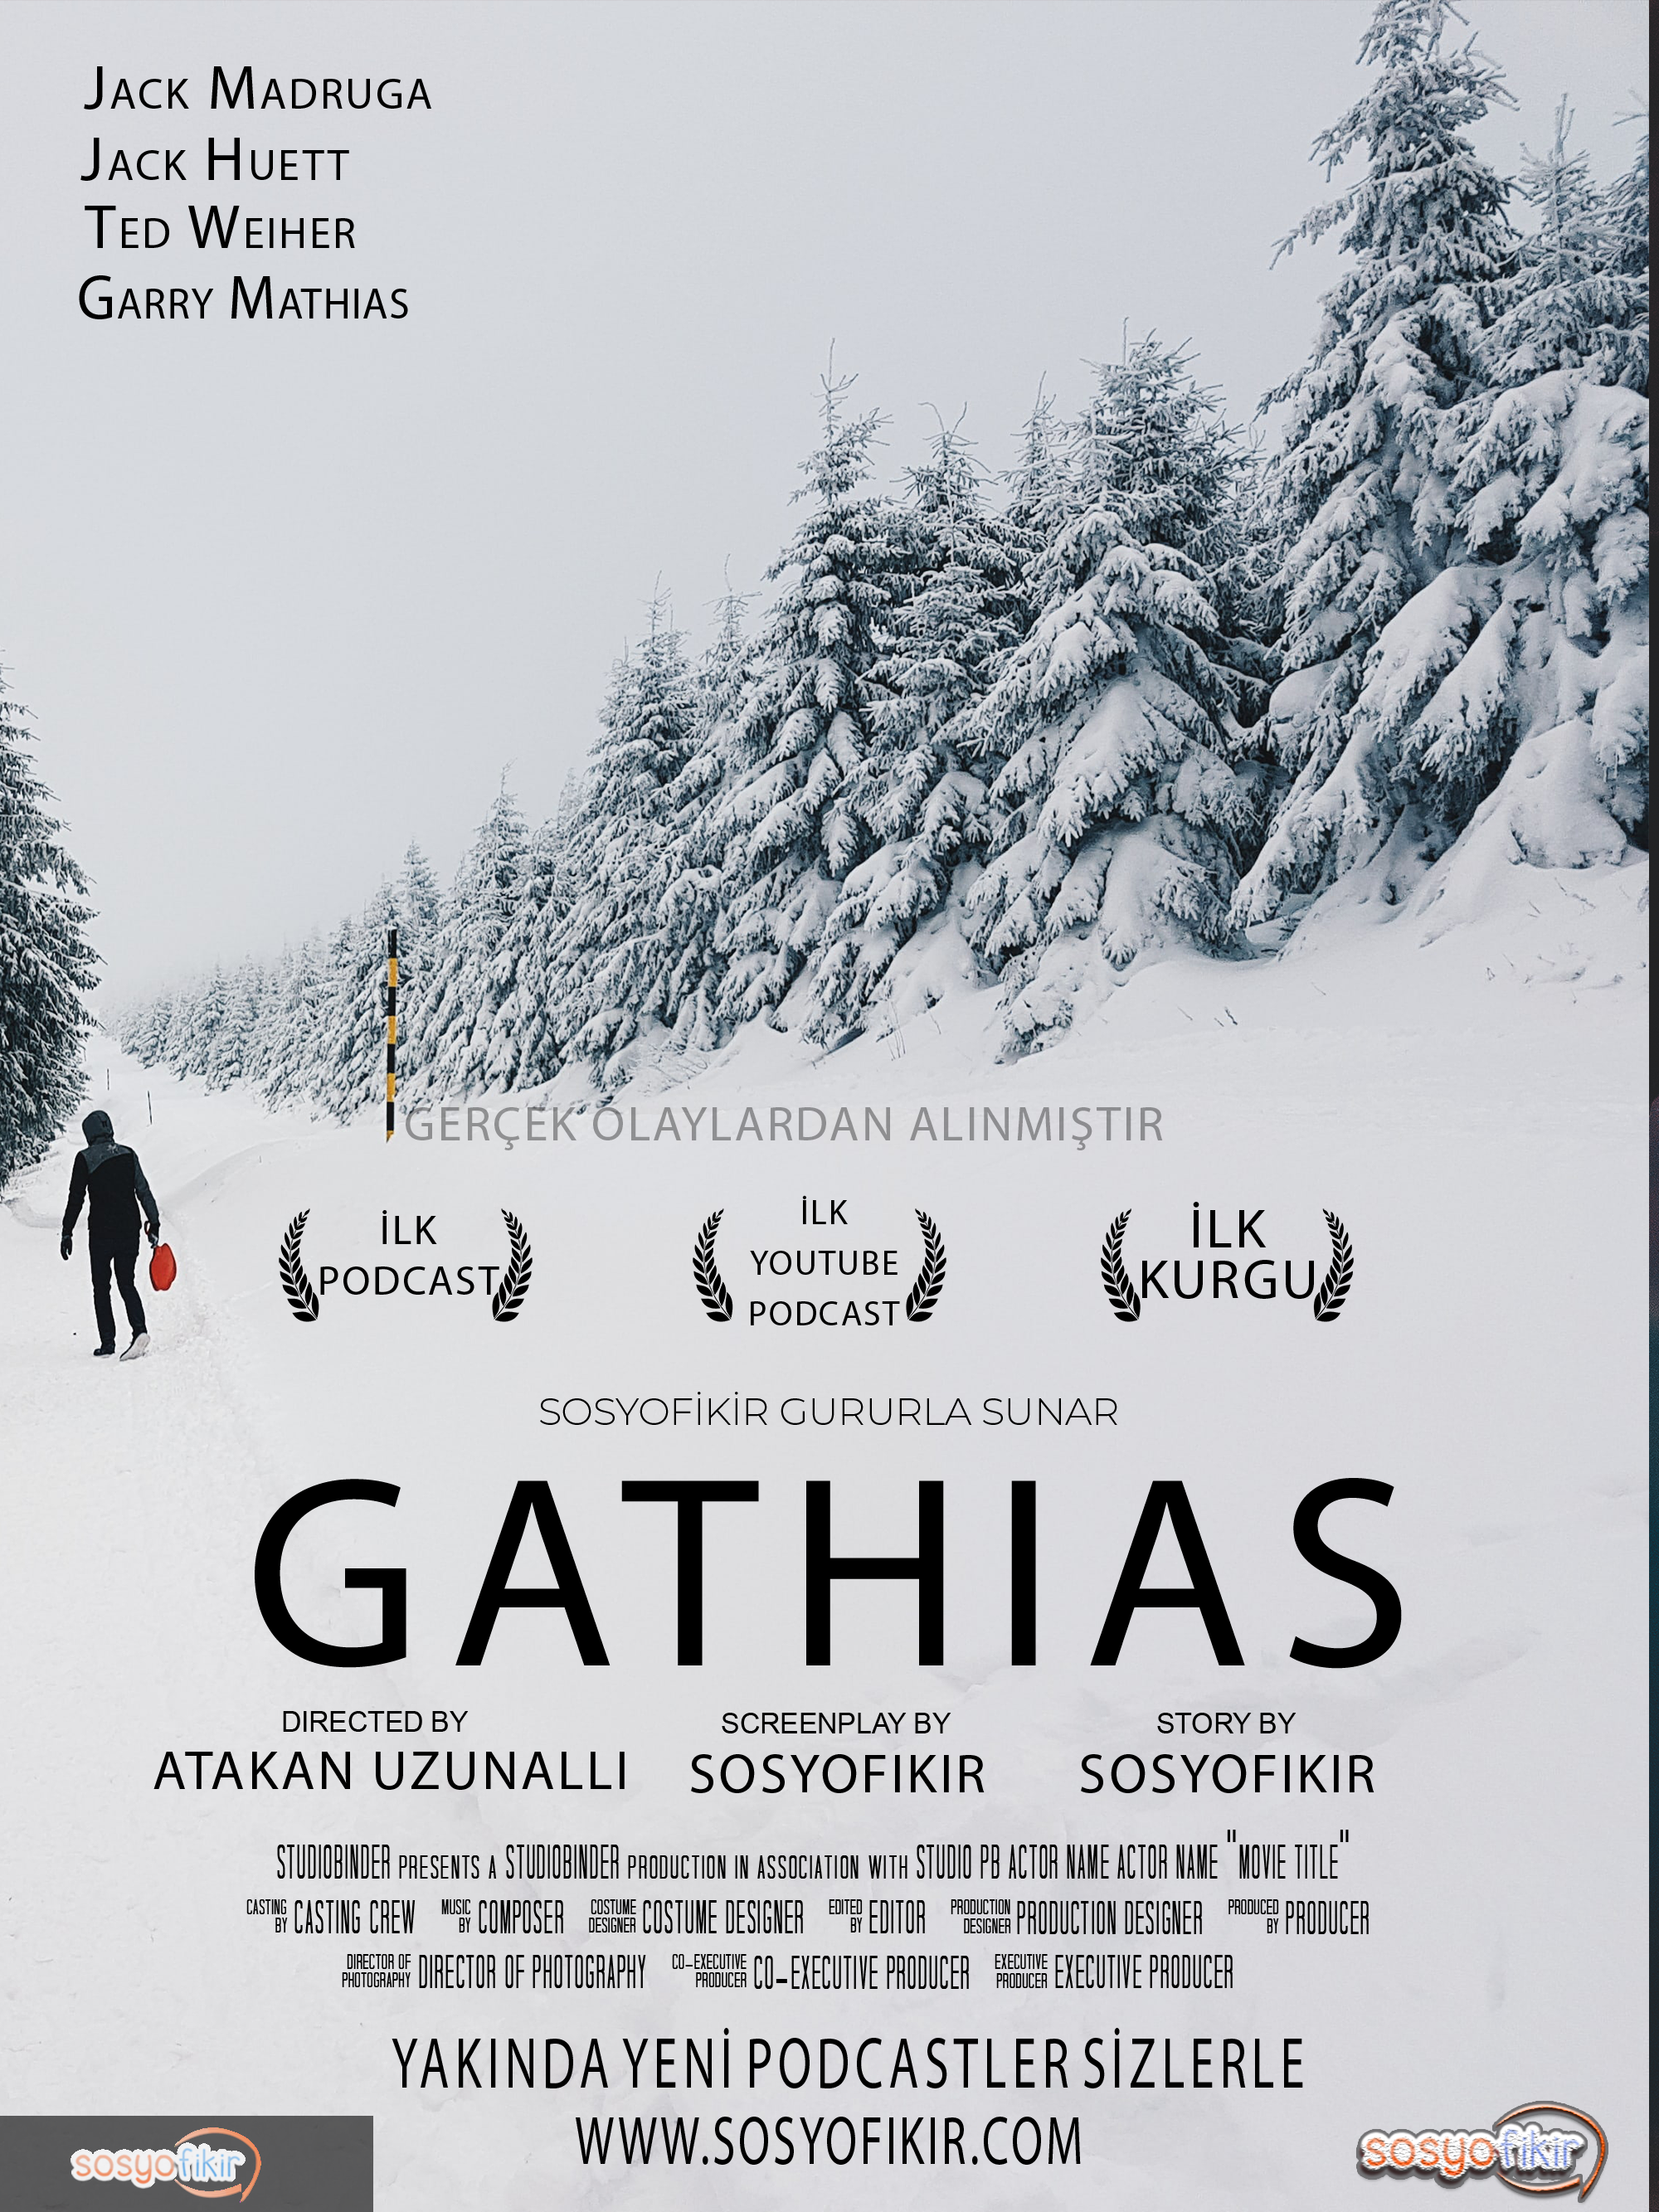 GATHIAS